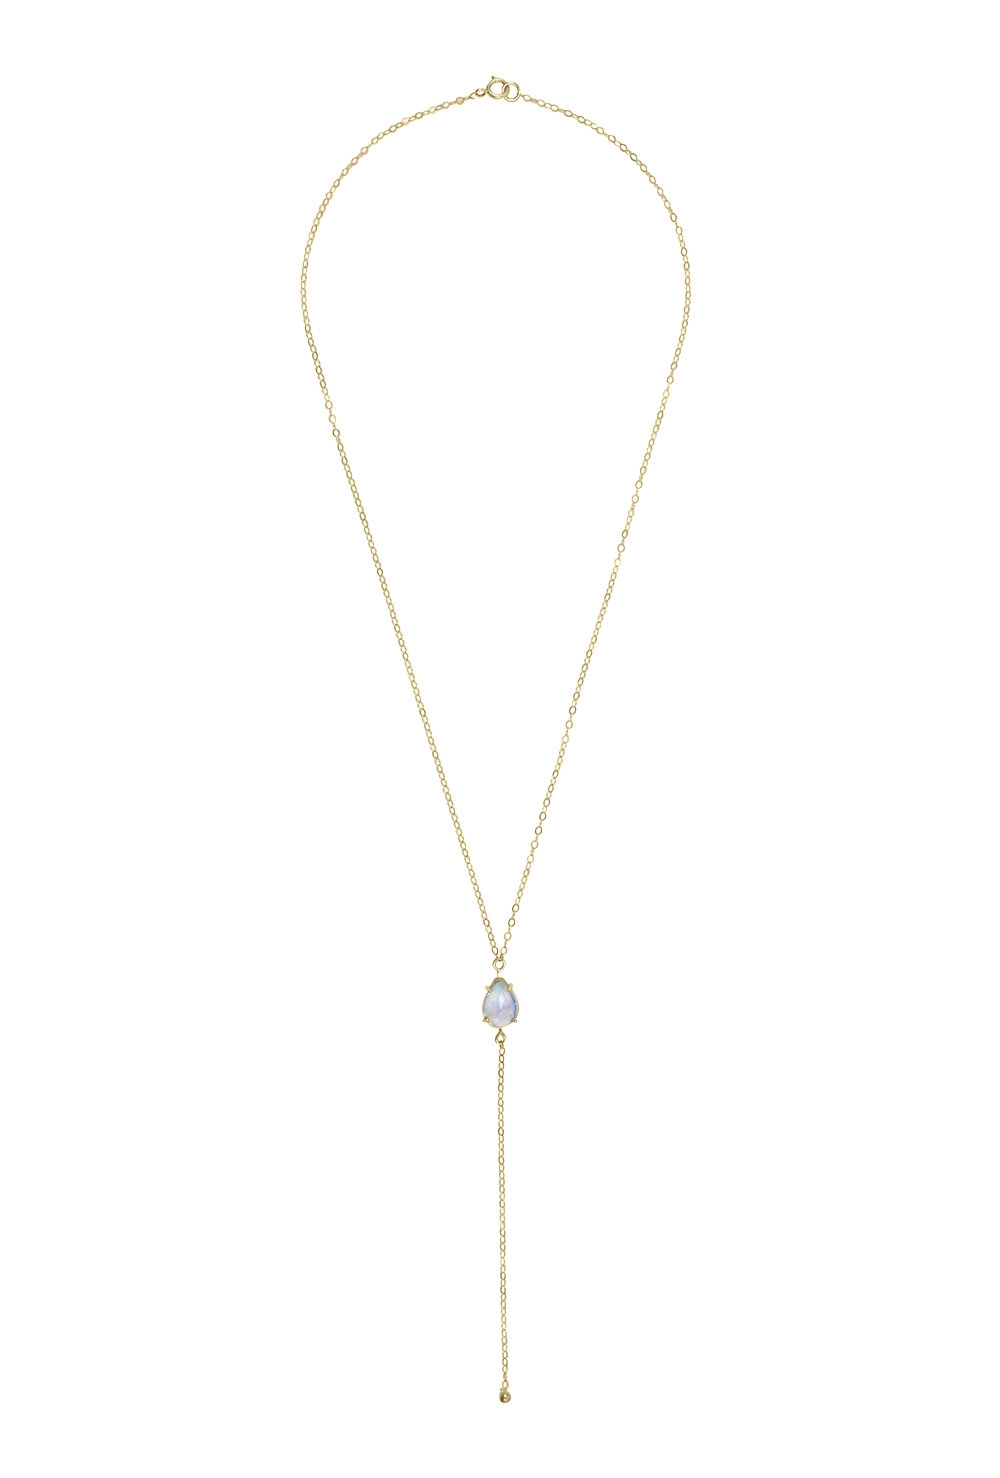 f33d8cf60f9f67 Chloe Necklace — Hannah Frost Jewelry